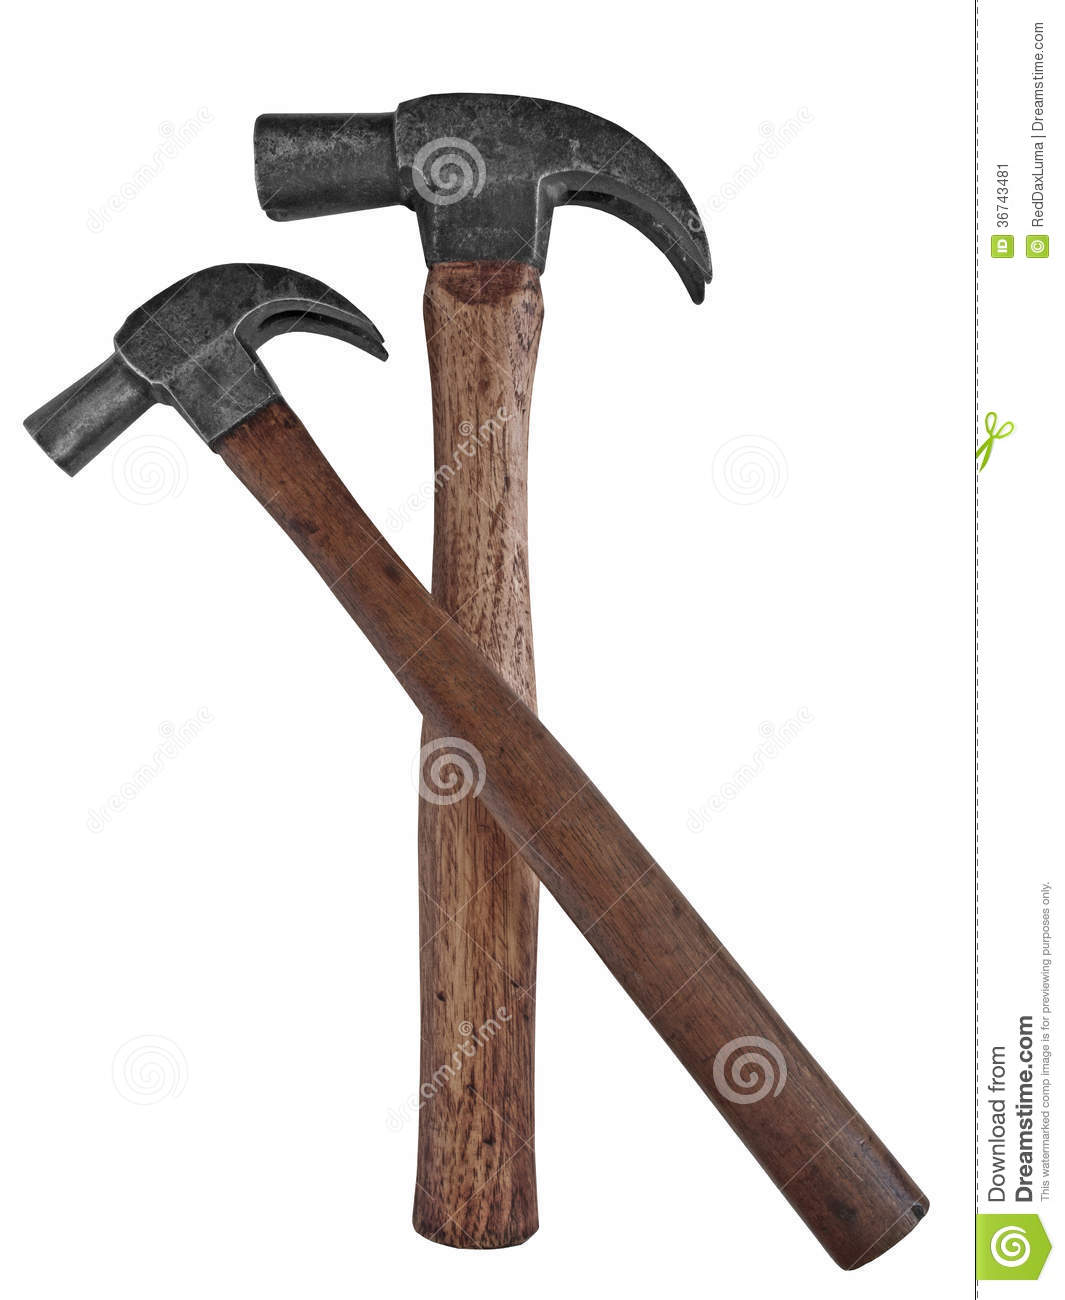 Industrial Craft  Hammer